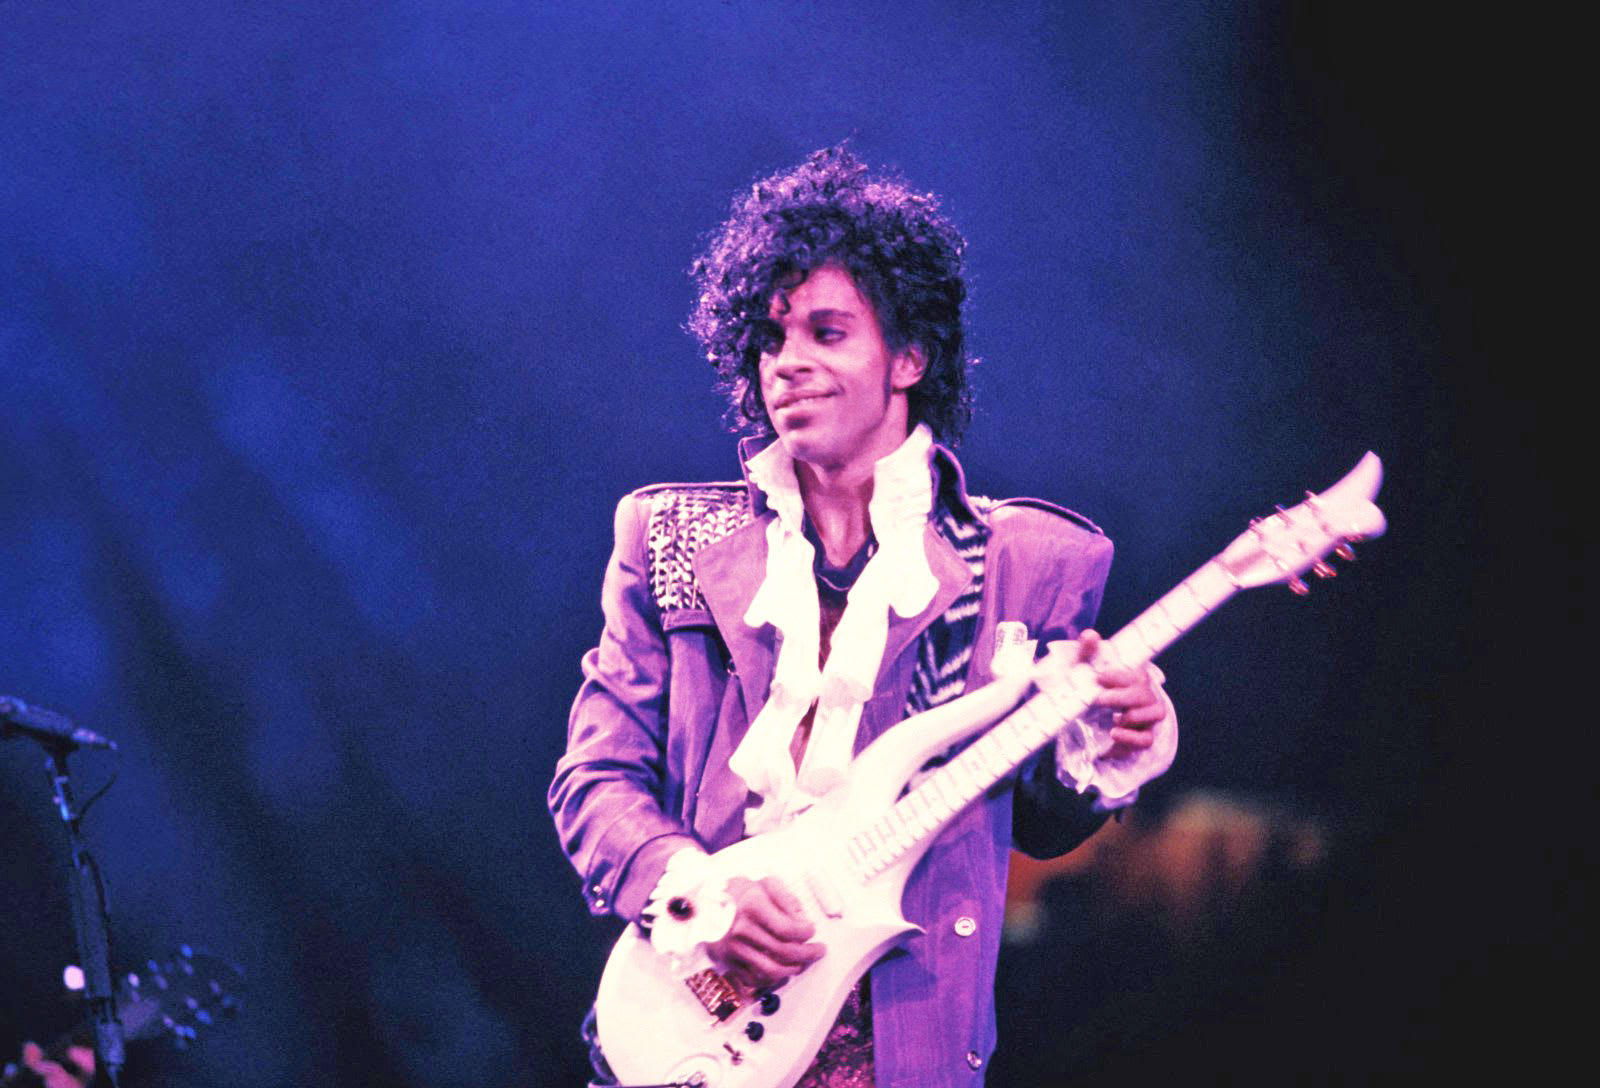 Prince's music returns to Spotify and other services this